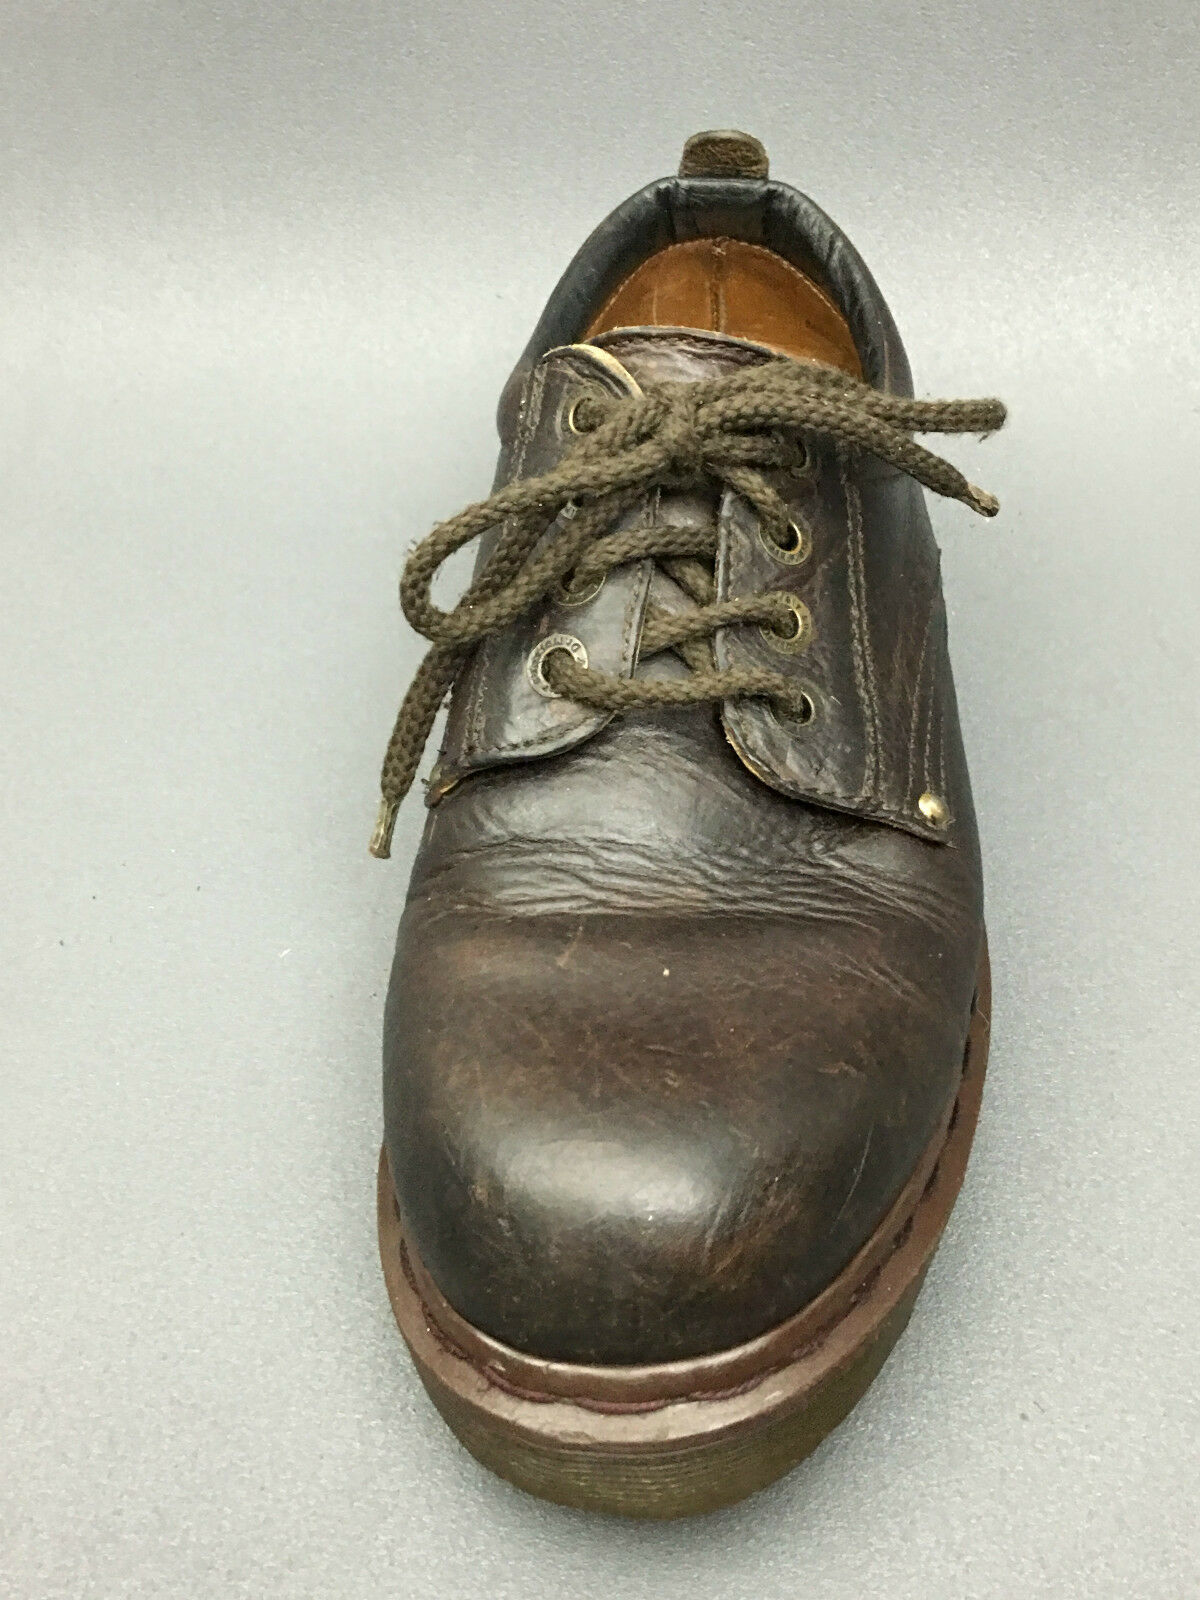 Dr. Martens Made in England Men's Leather Oxford  Brown shoes Size 9